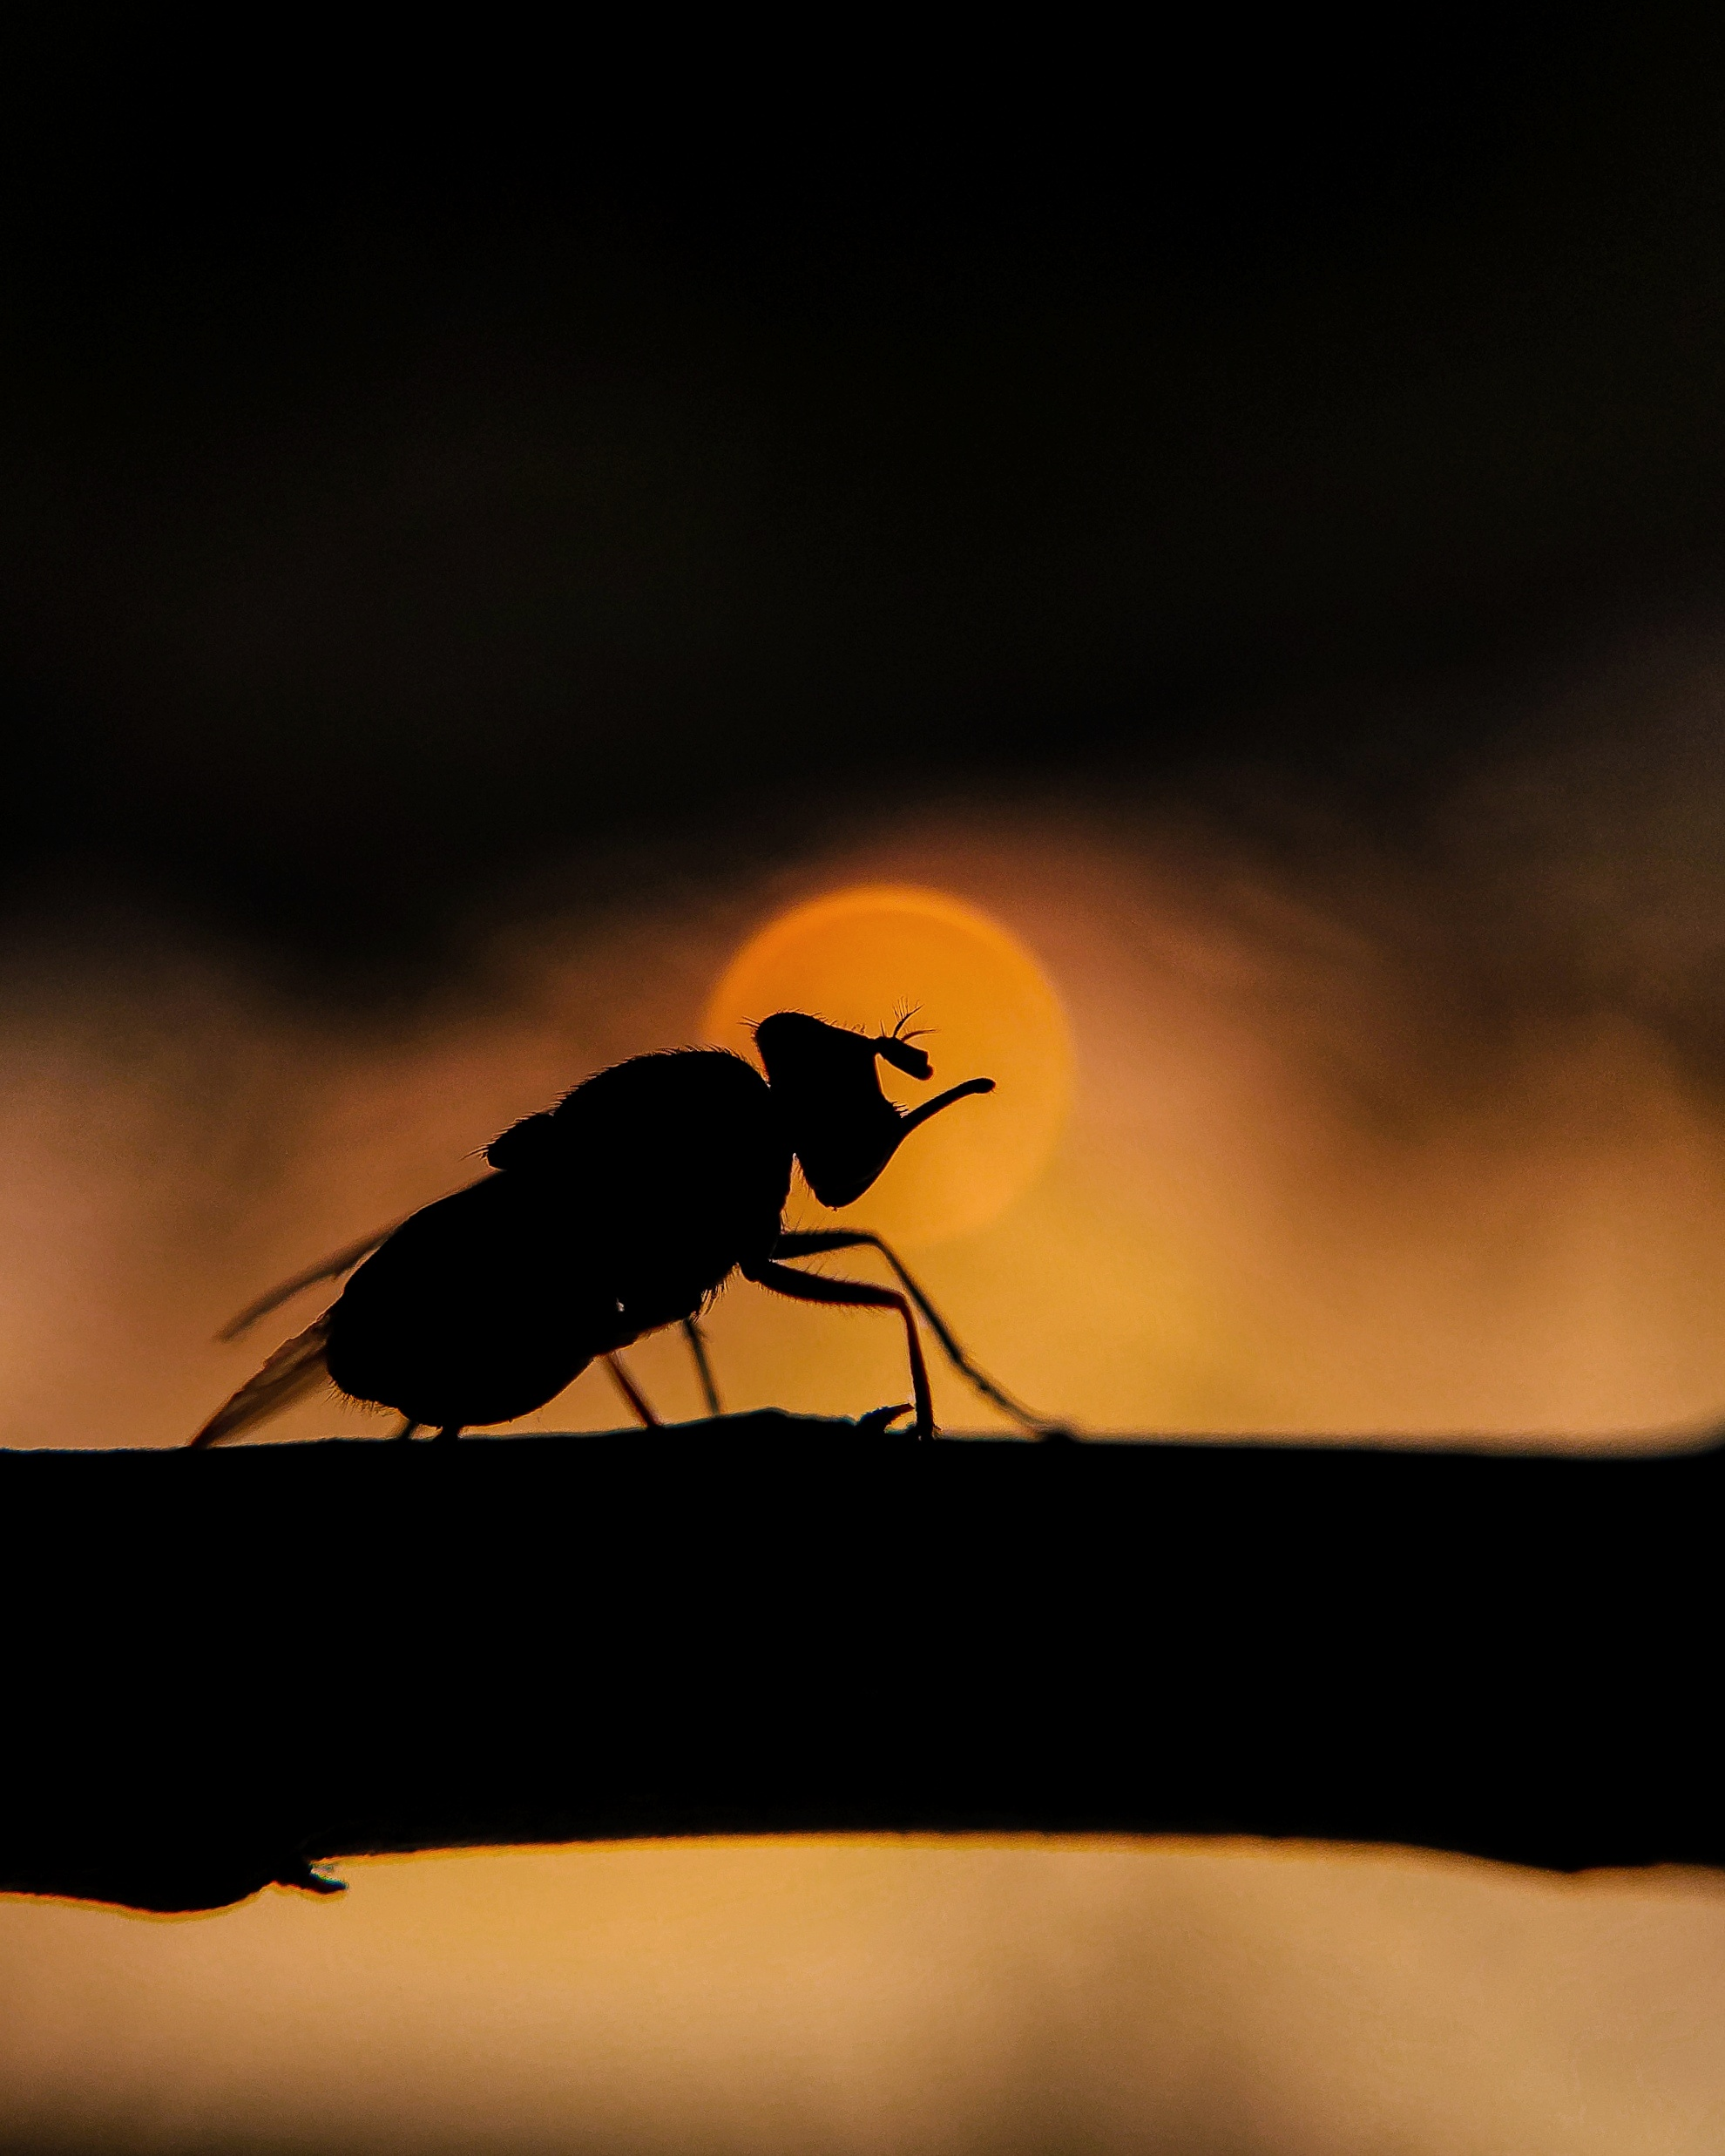 Silhouette of fly in the sunset